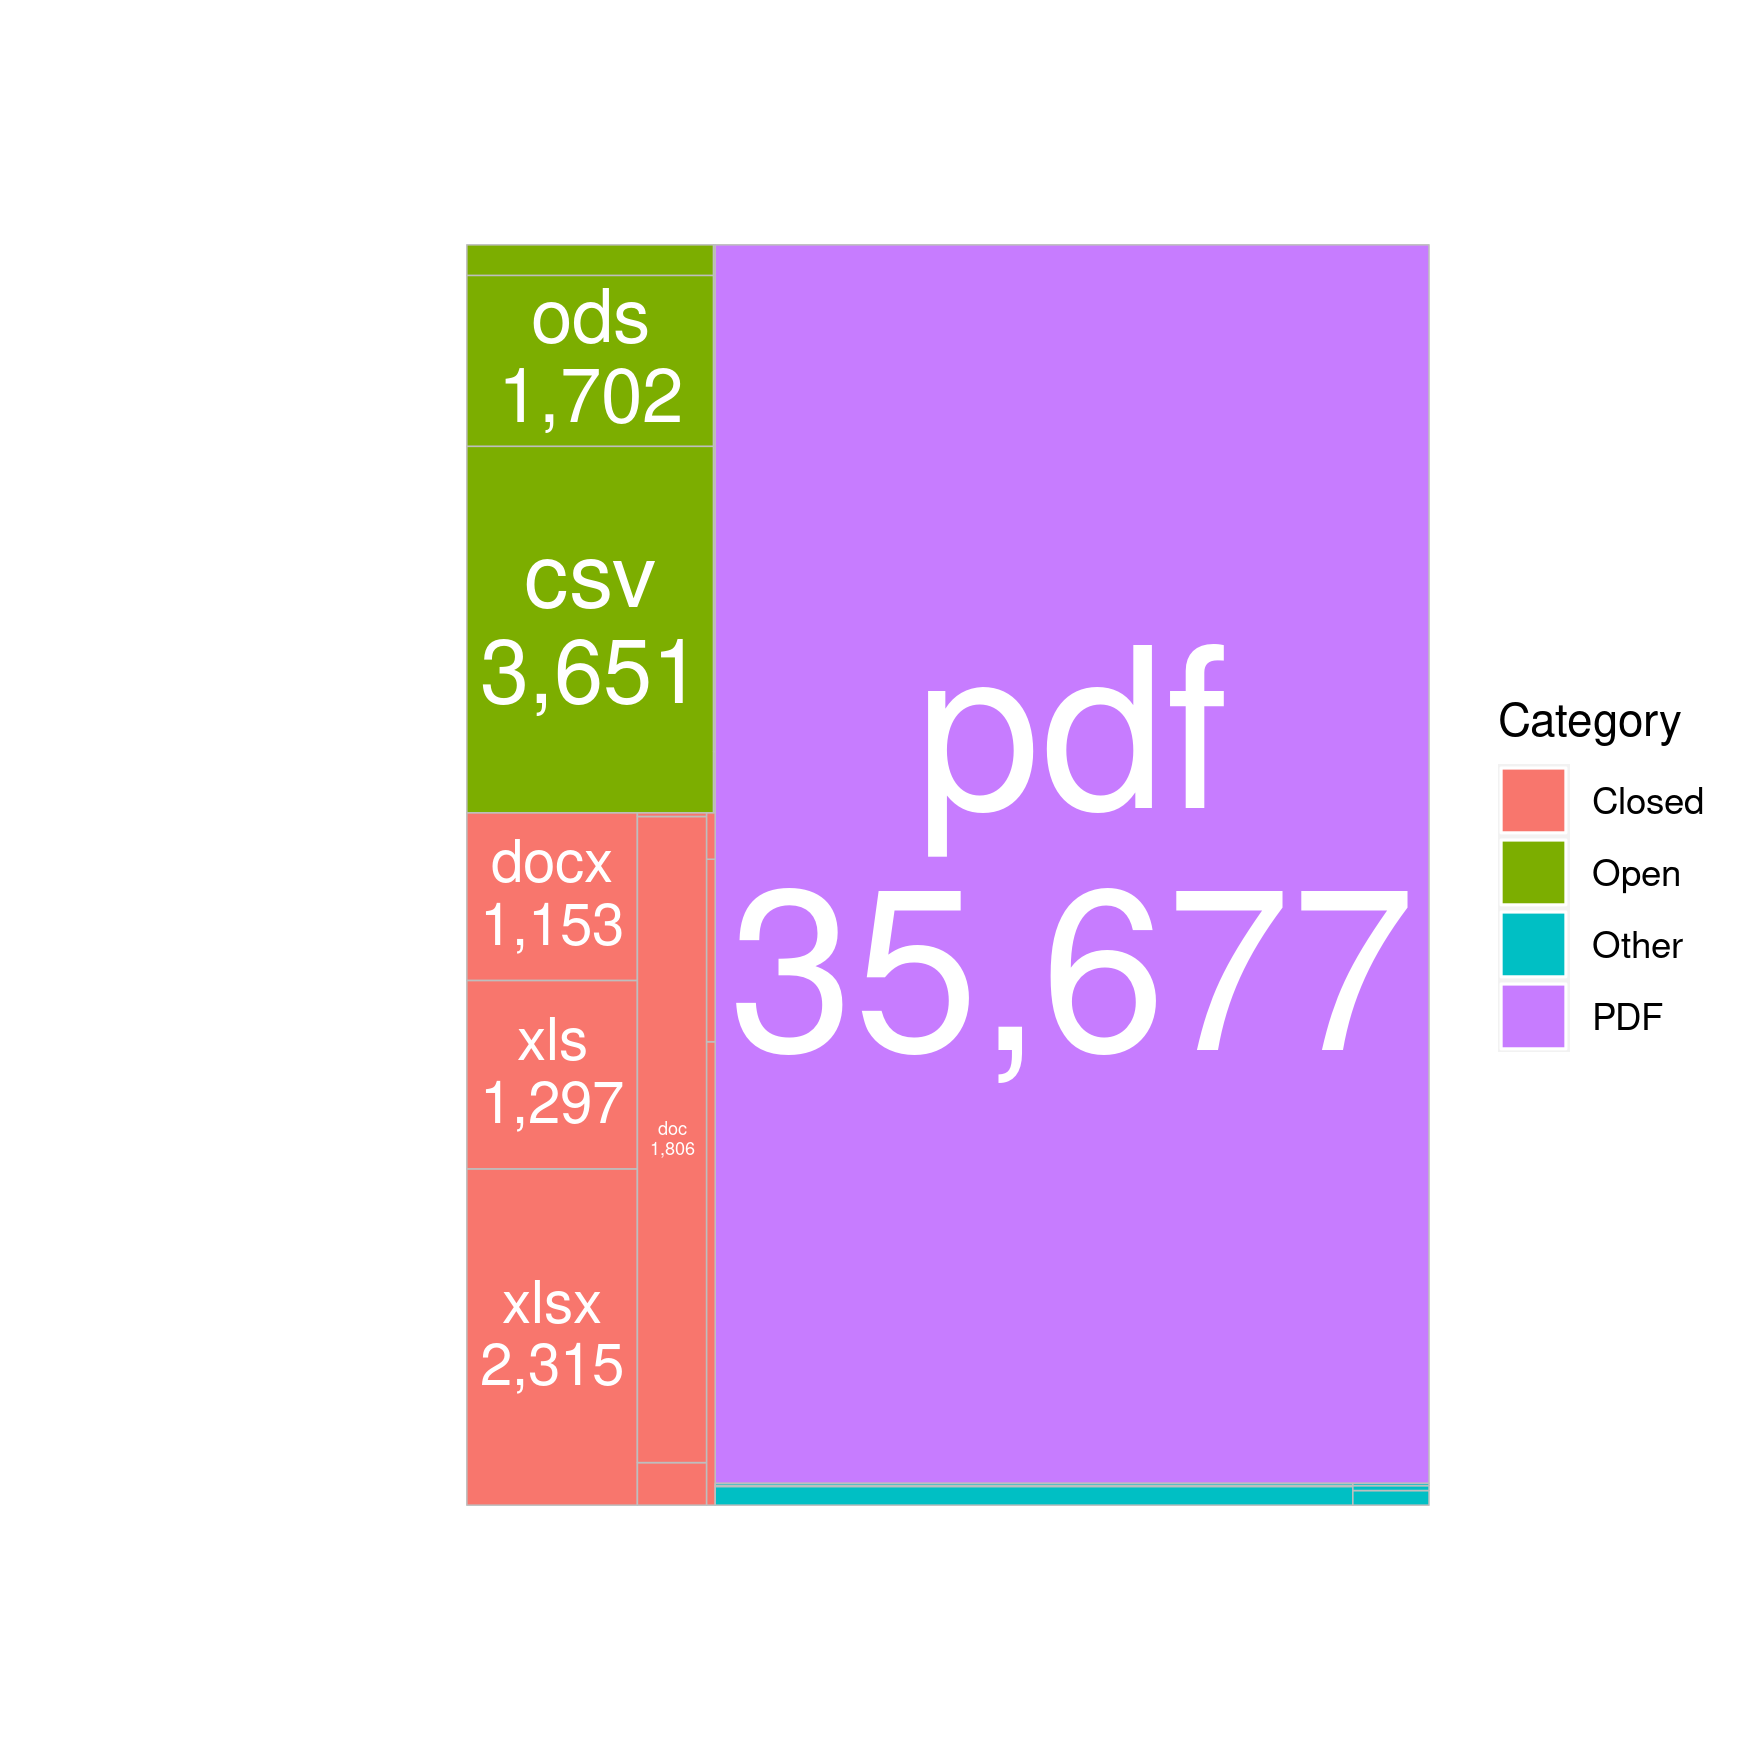 A treemap which show a volumetric view of data.